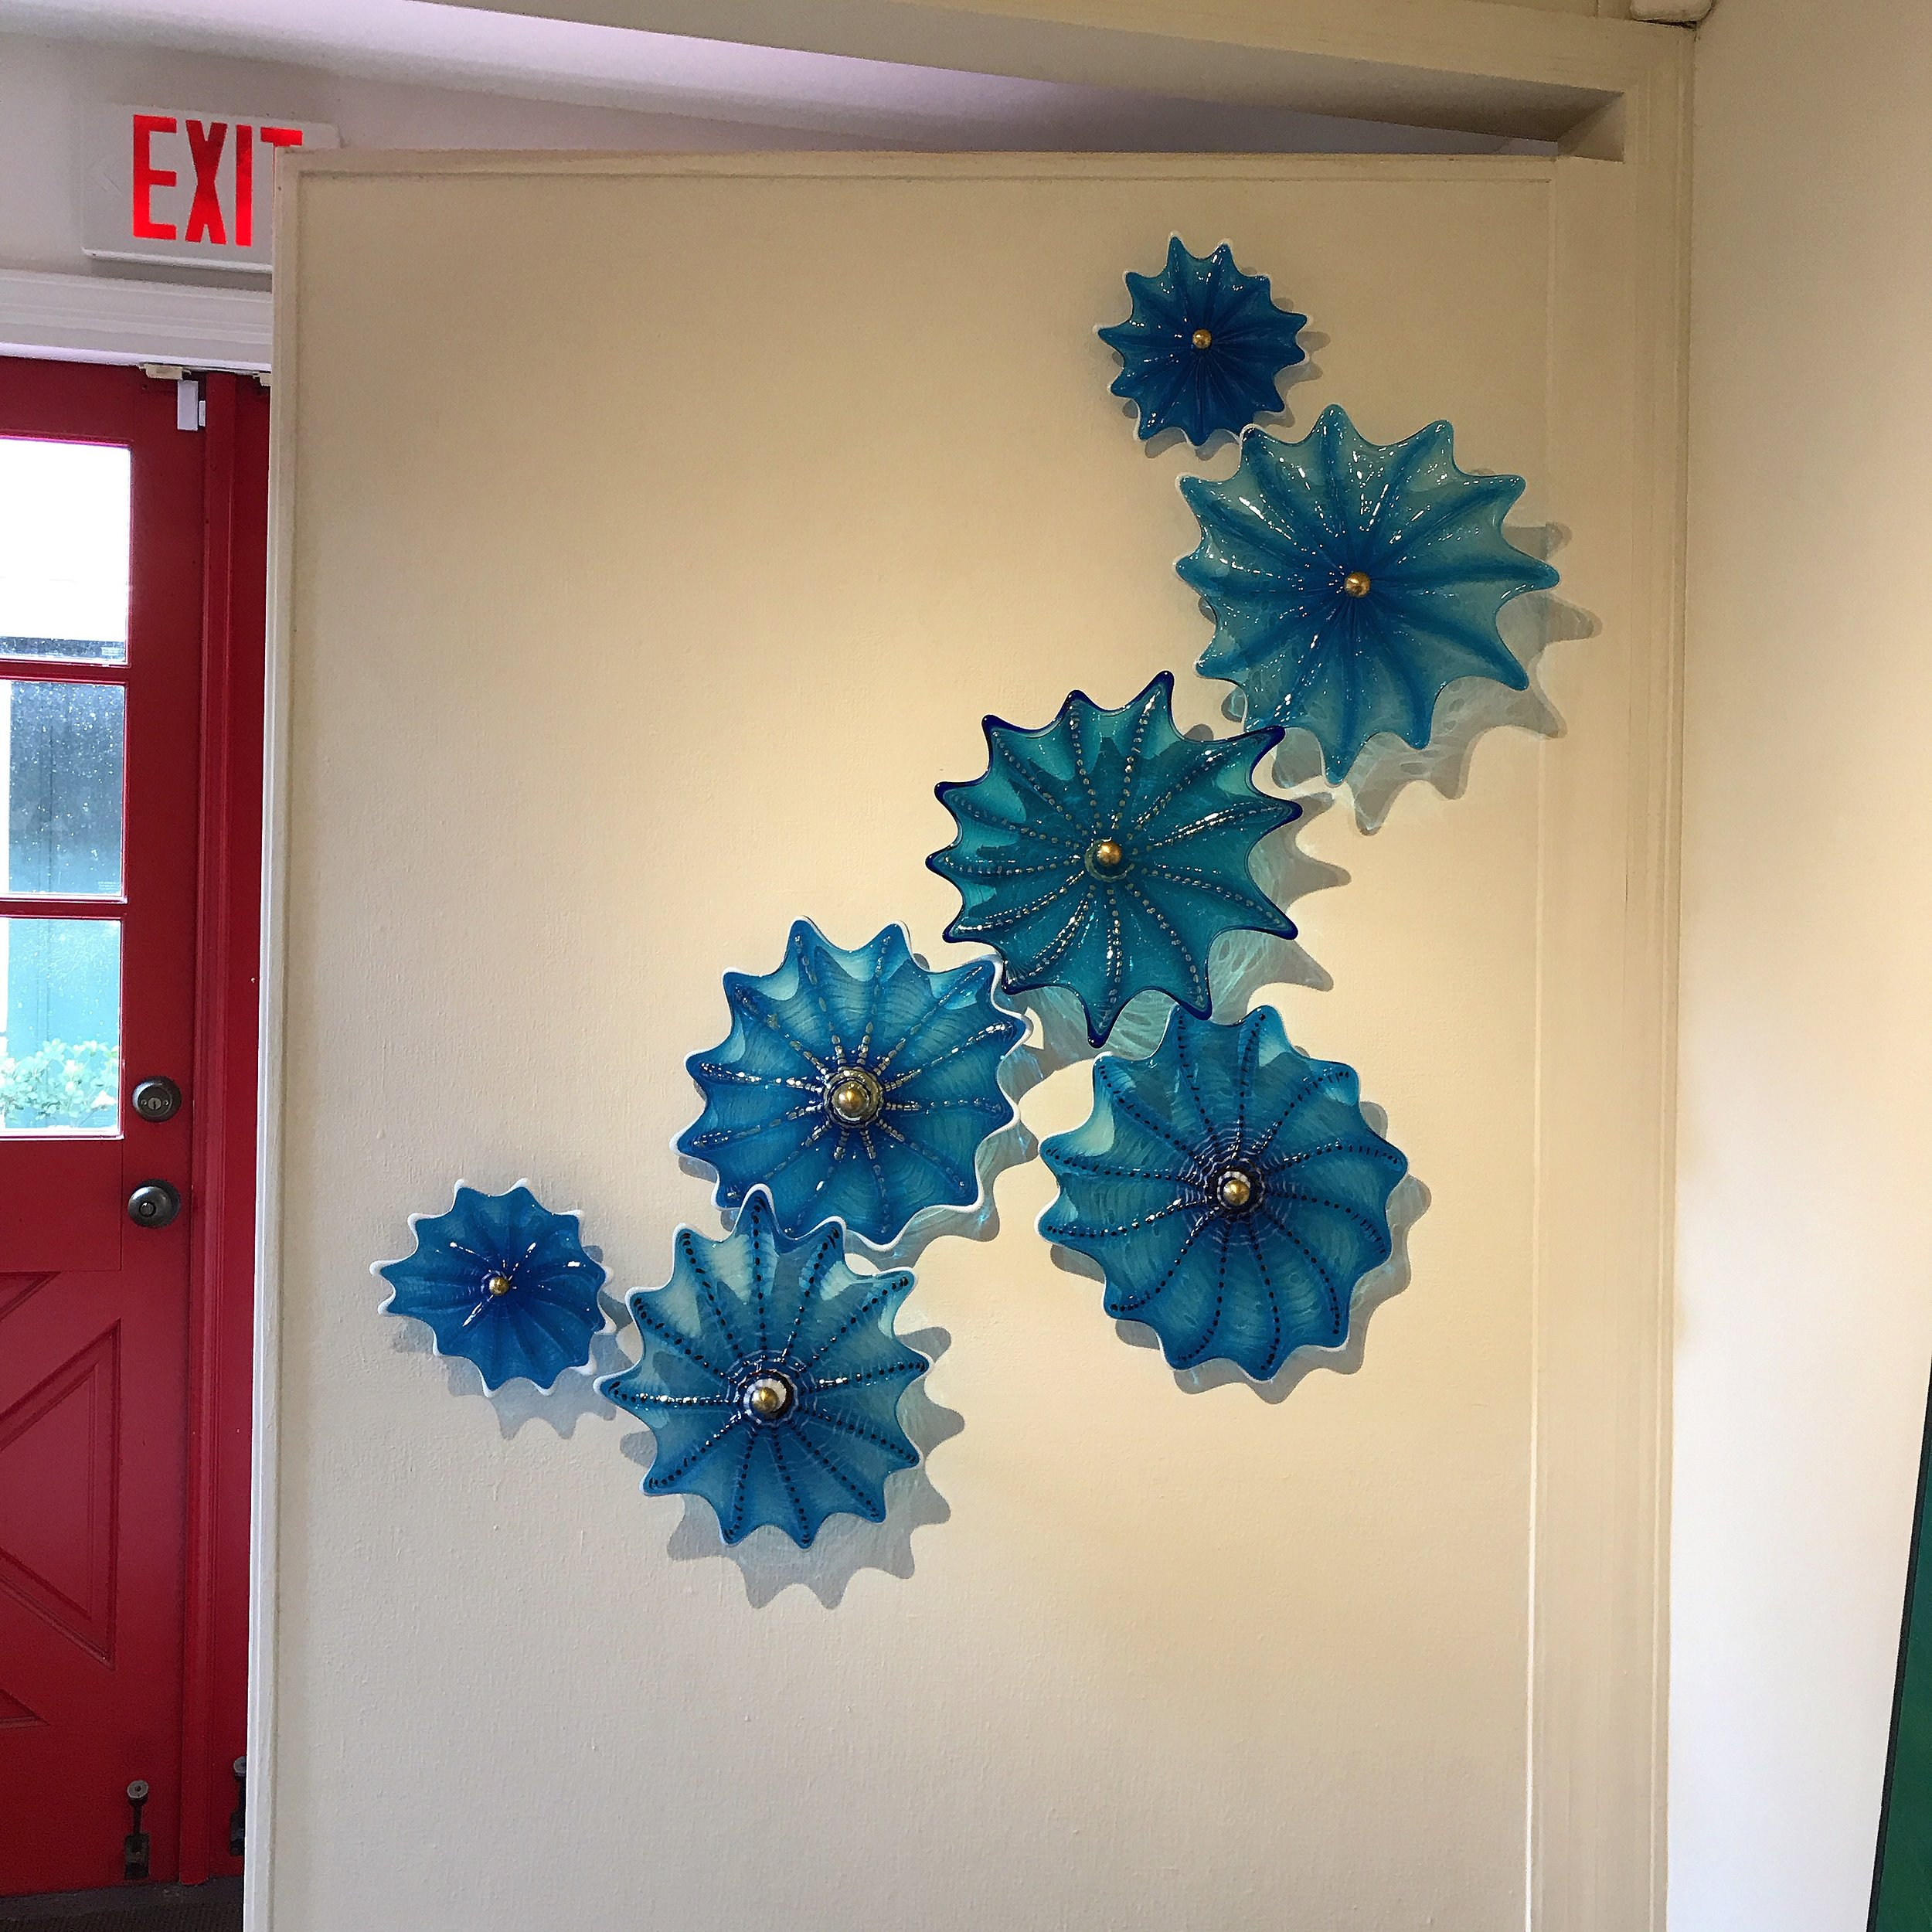 Turquoise Cathedral Rondel Wall Splash,  rick strini,  viewpoints gallery,  maui.